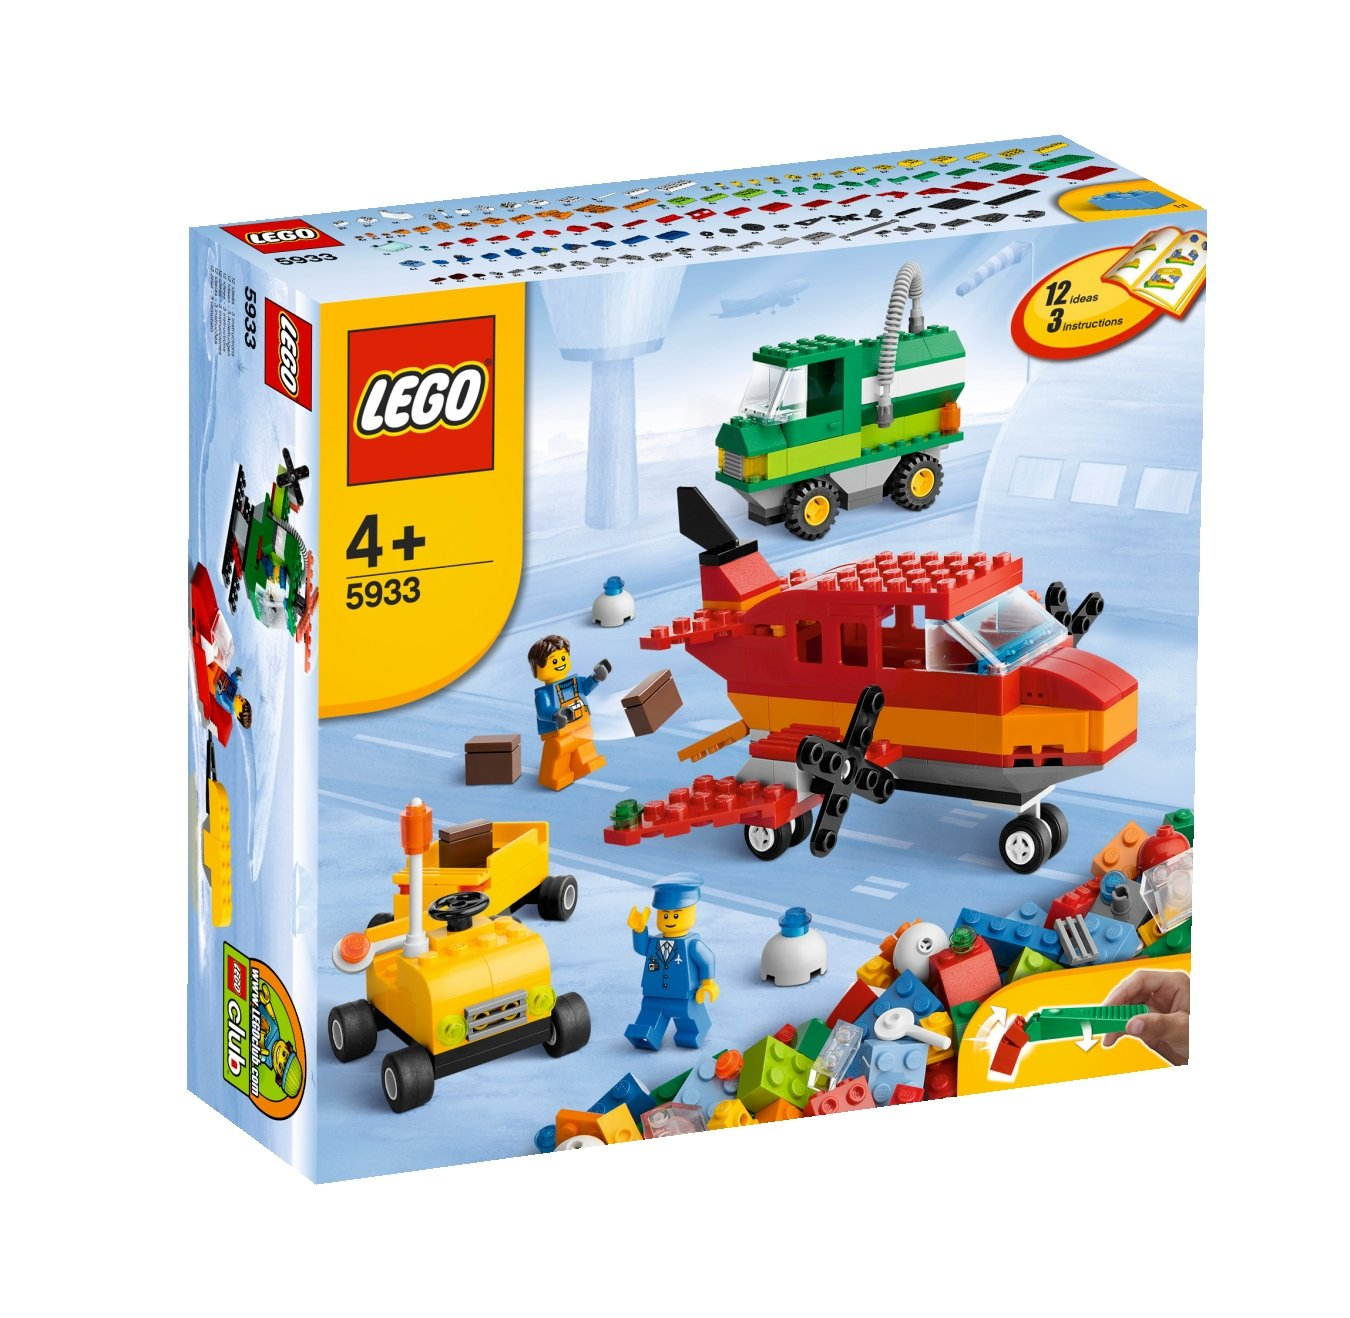 Lego Bricks More 5933 Airport Building Set Amazon Toys